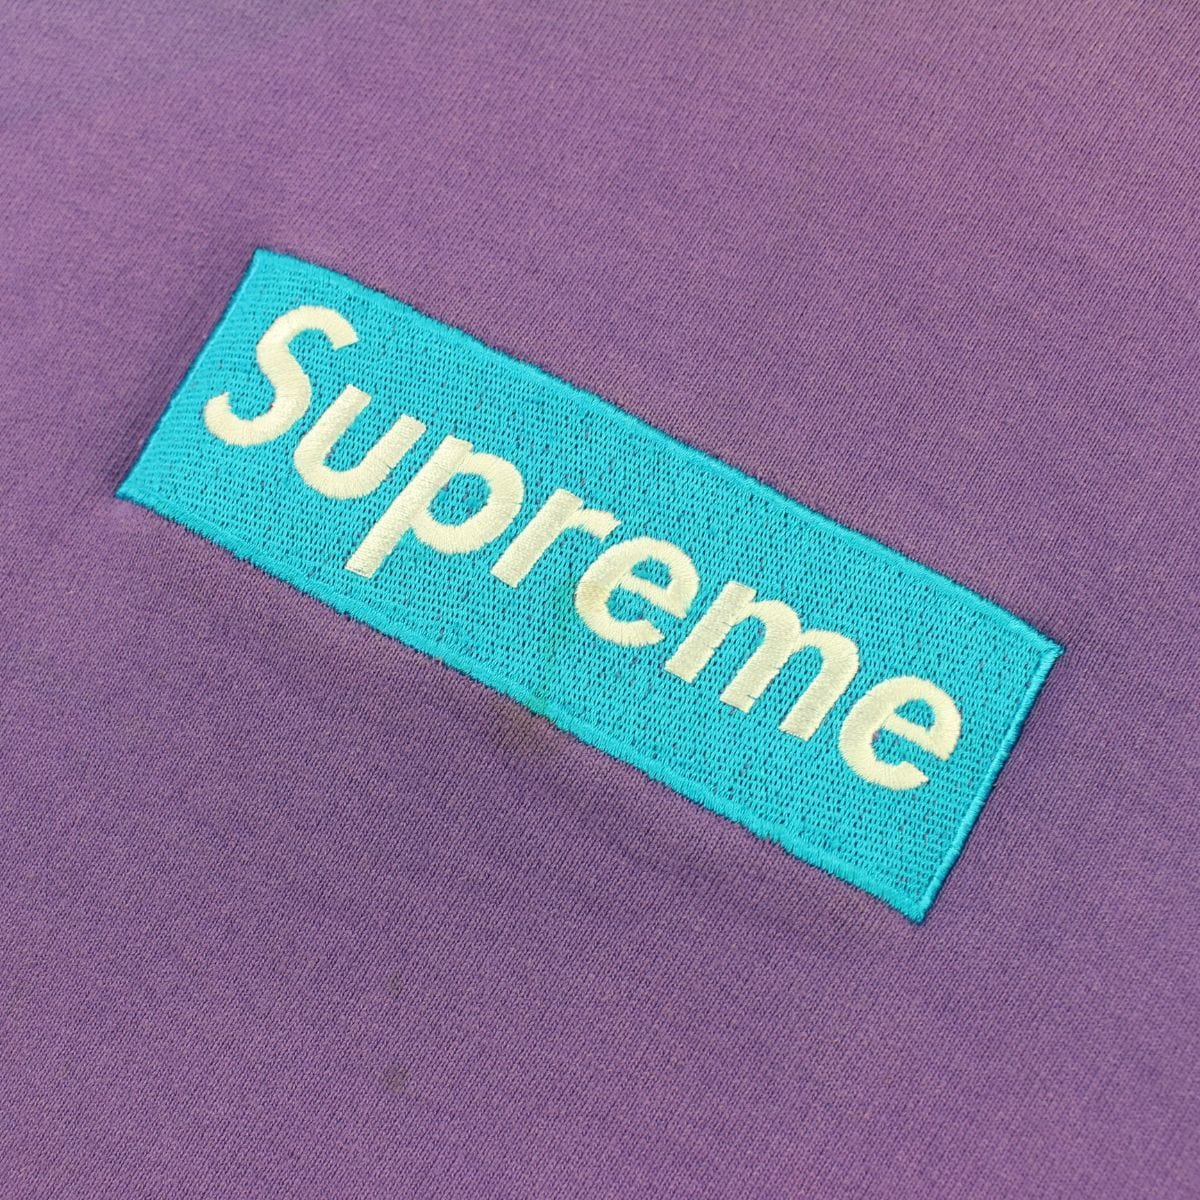 Supreme Teal on Purple Box Logo Crewneck - SaruGeneral